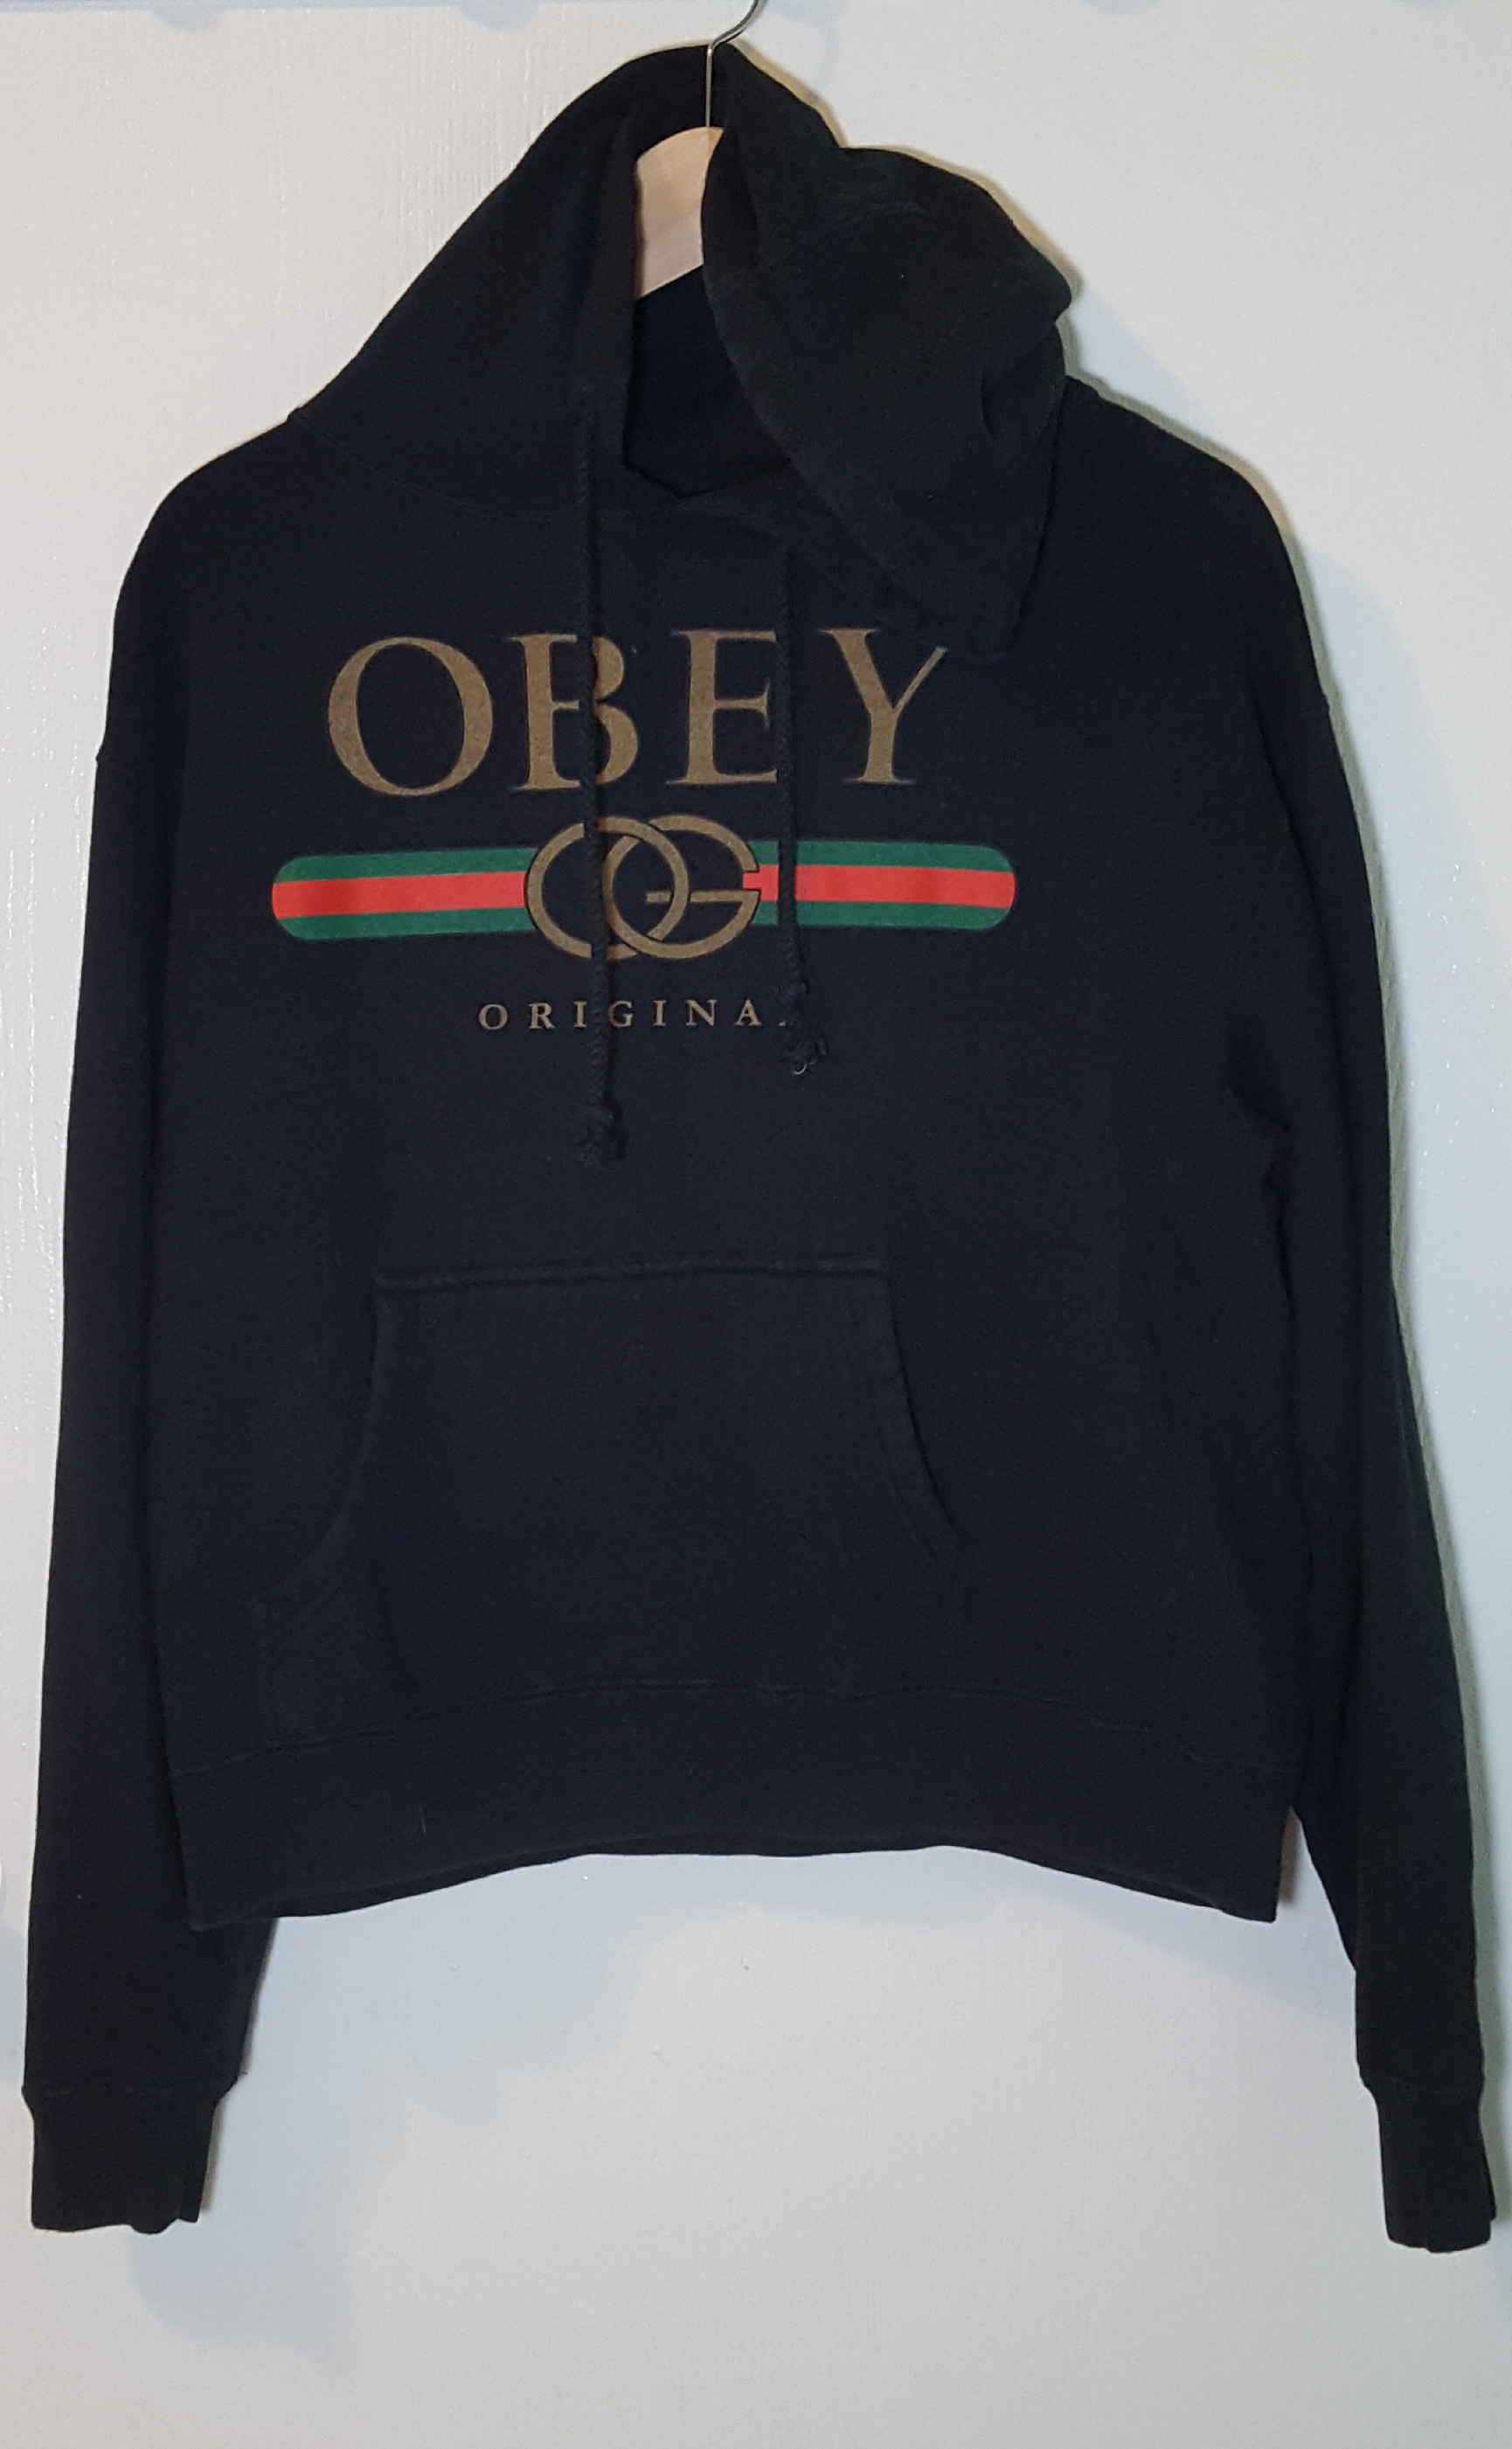 8fdb63a5077fbc Obey RARE Brand New Unofficial GUCCI × Obey Black Pull Over Hoodie Men Sz S  Size s - Sweatshirts   Hoodies for Sale - Grailed